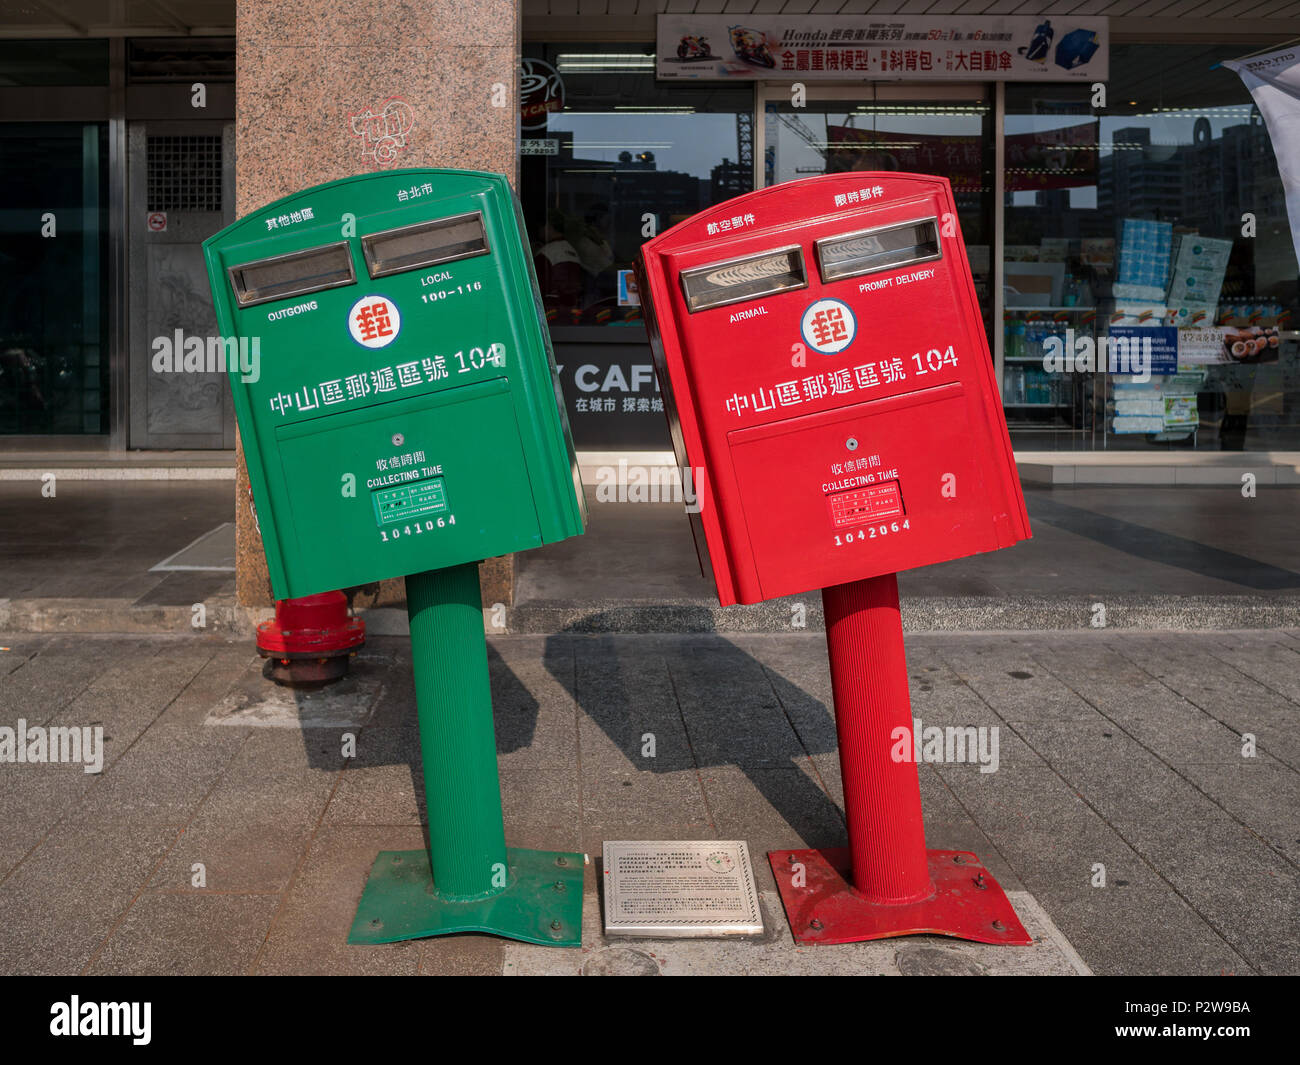 Taipei, MAY 23: The most famous two leaning mailboxes on MAY 23, 2018 at Taipei, Taiwan Stock Photo